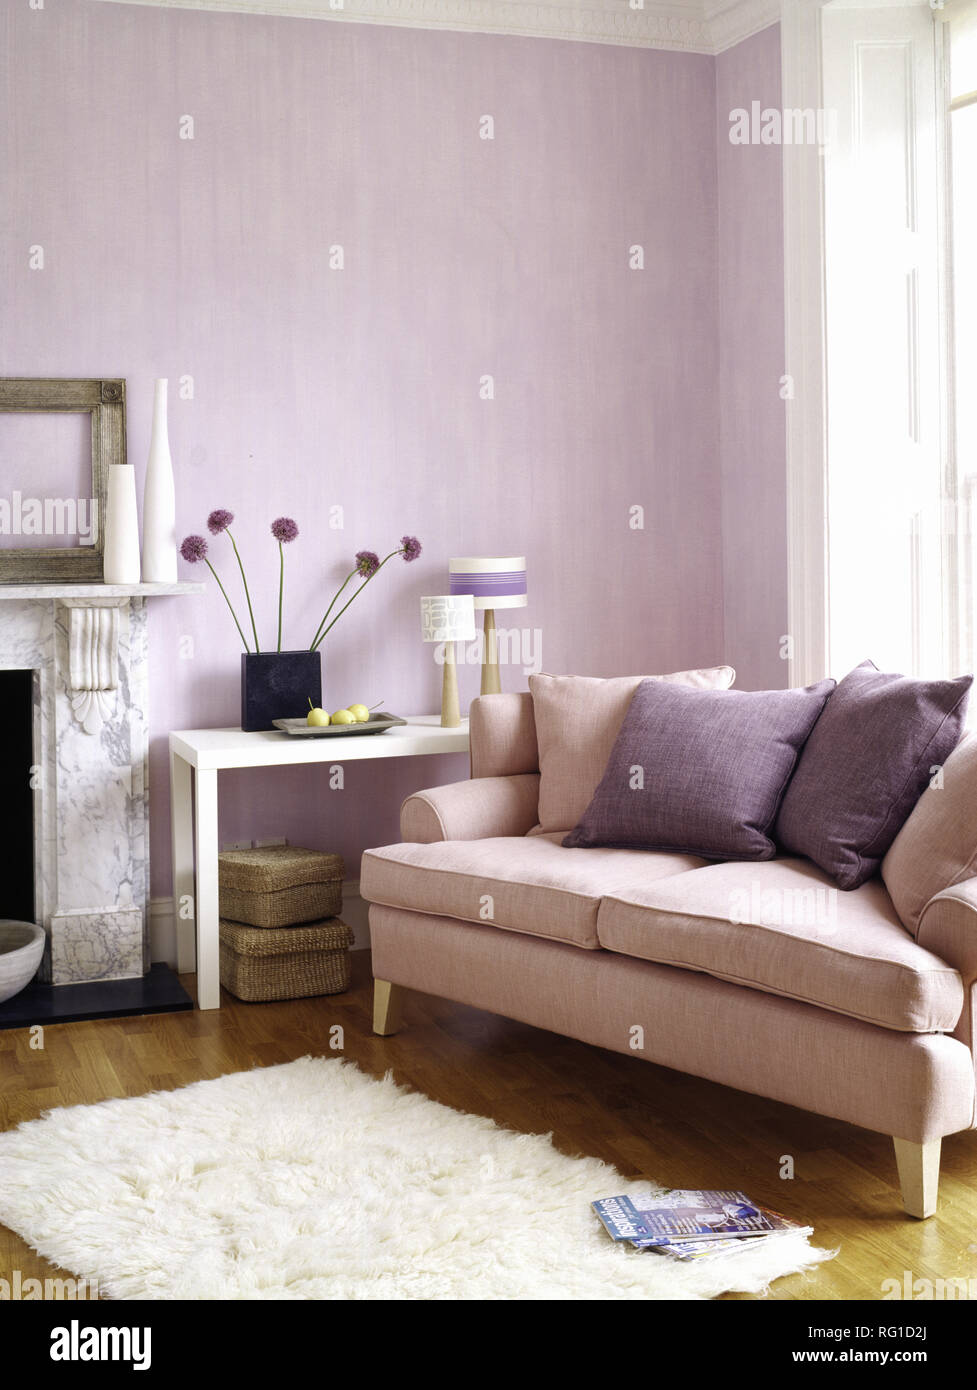 Remarkable Mauve Cushions On Pale Pink Sofa In Mauve Living Room Stock Interior Design Ideas Gentotthenellocom